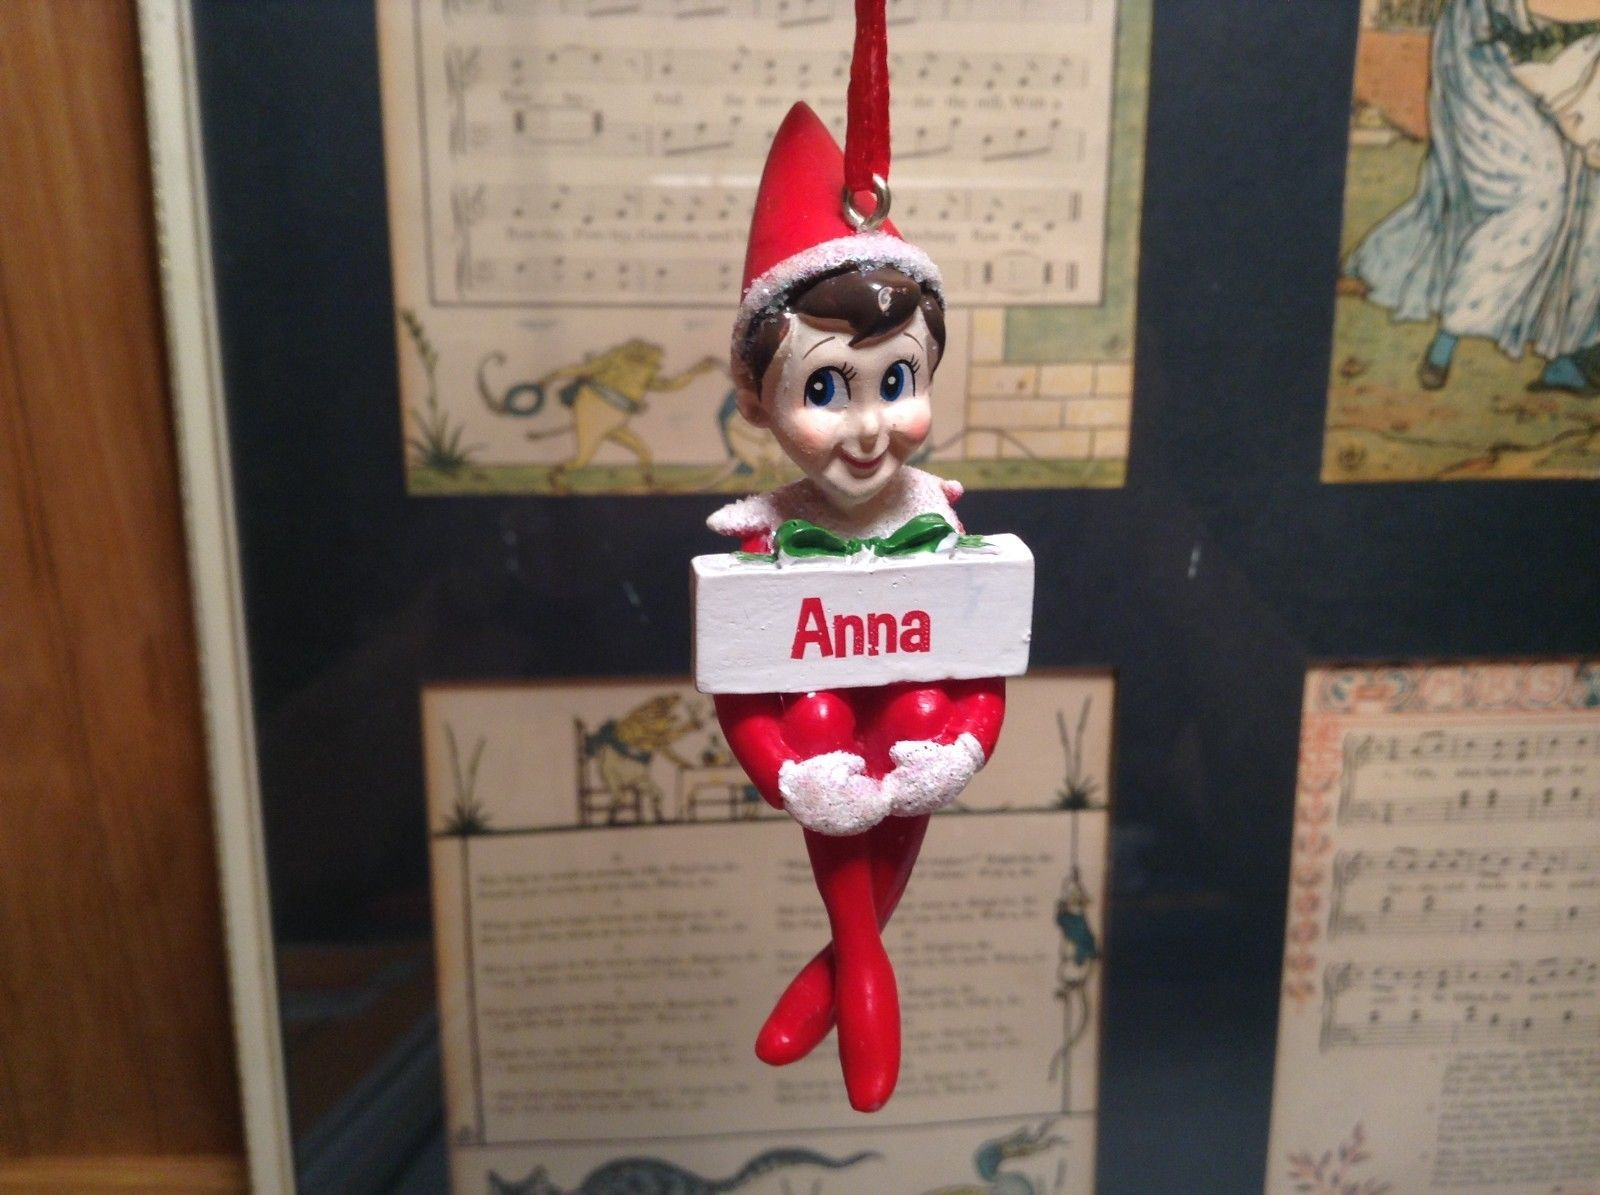 Dept 56 - Elf on the Shelf - Elf named Anna Christmas Ornament